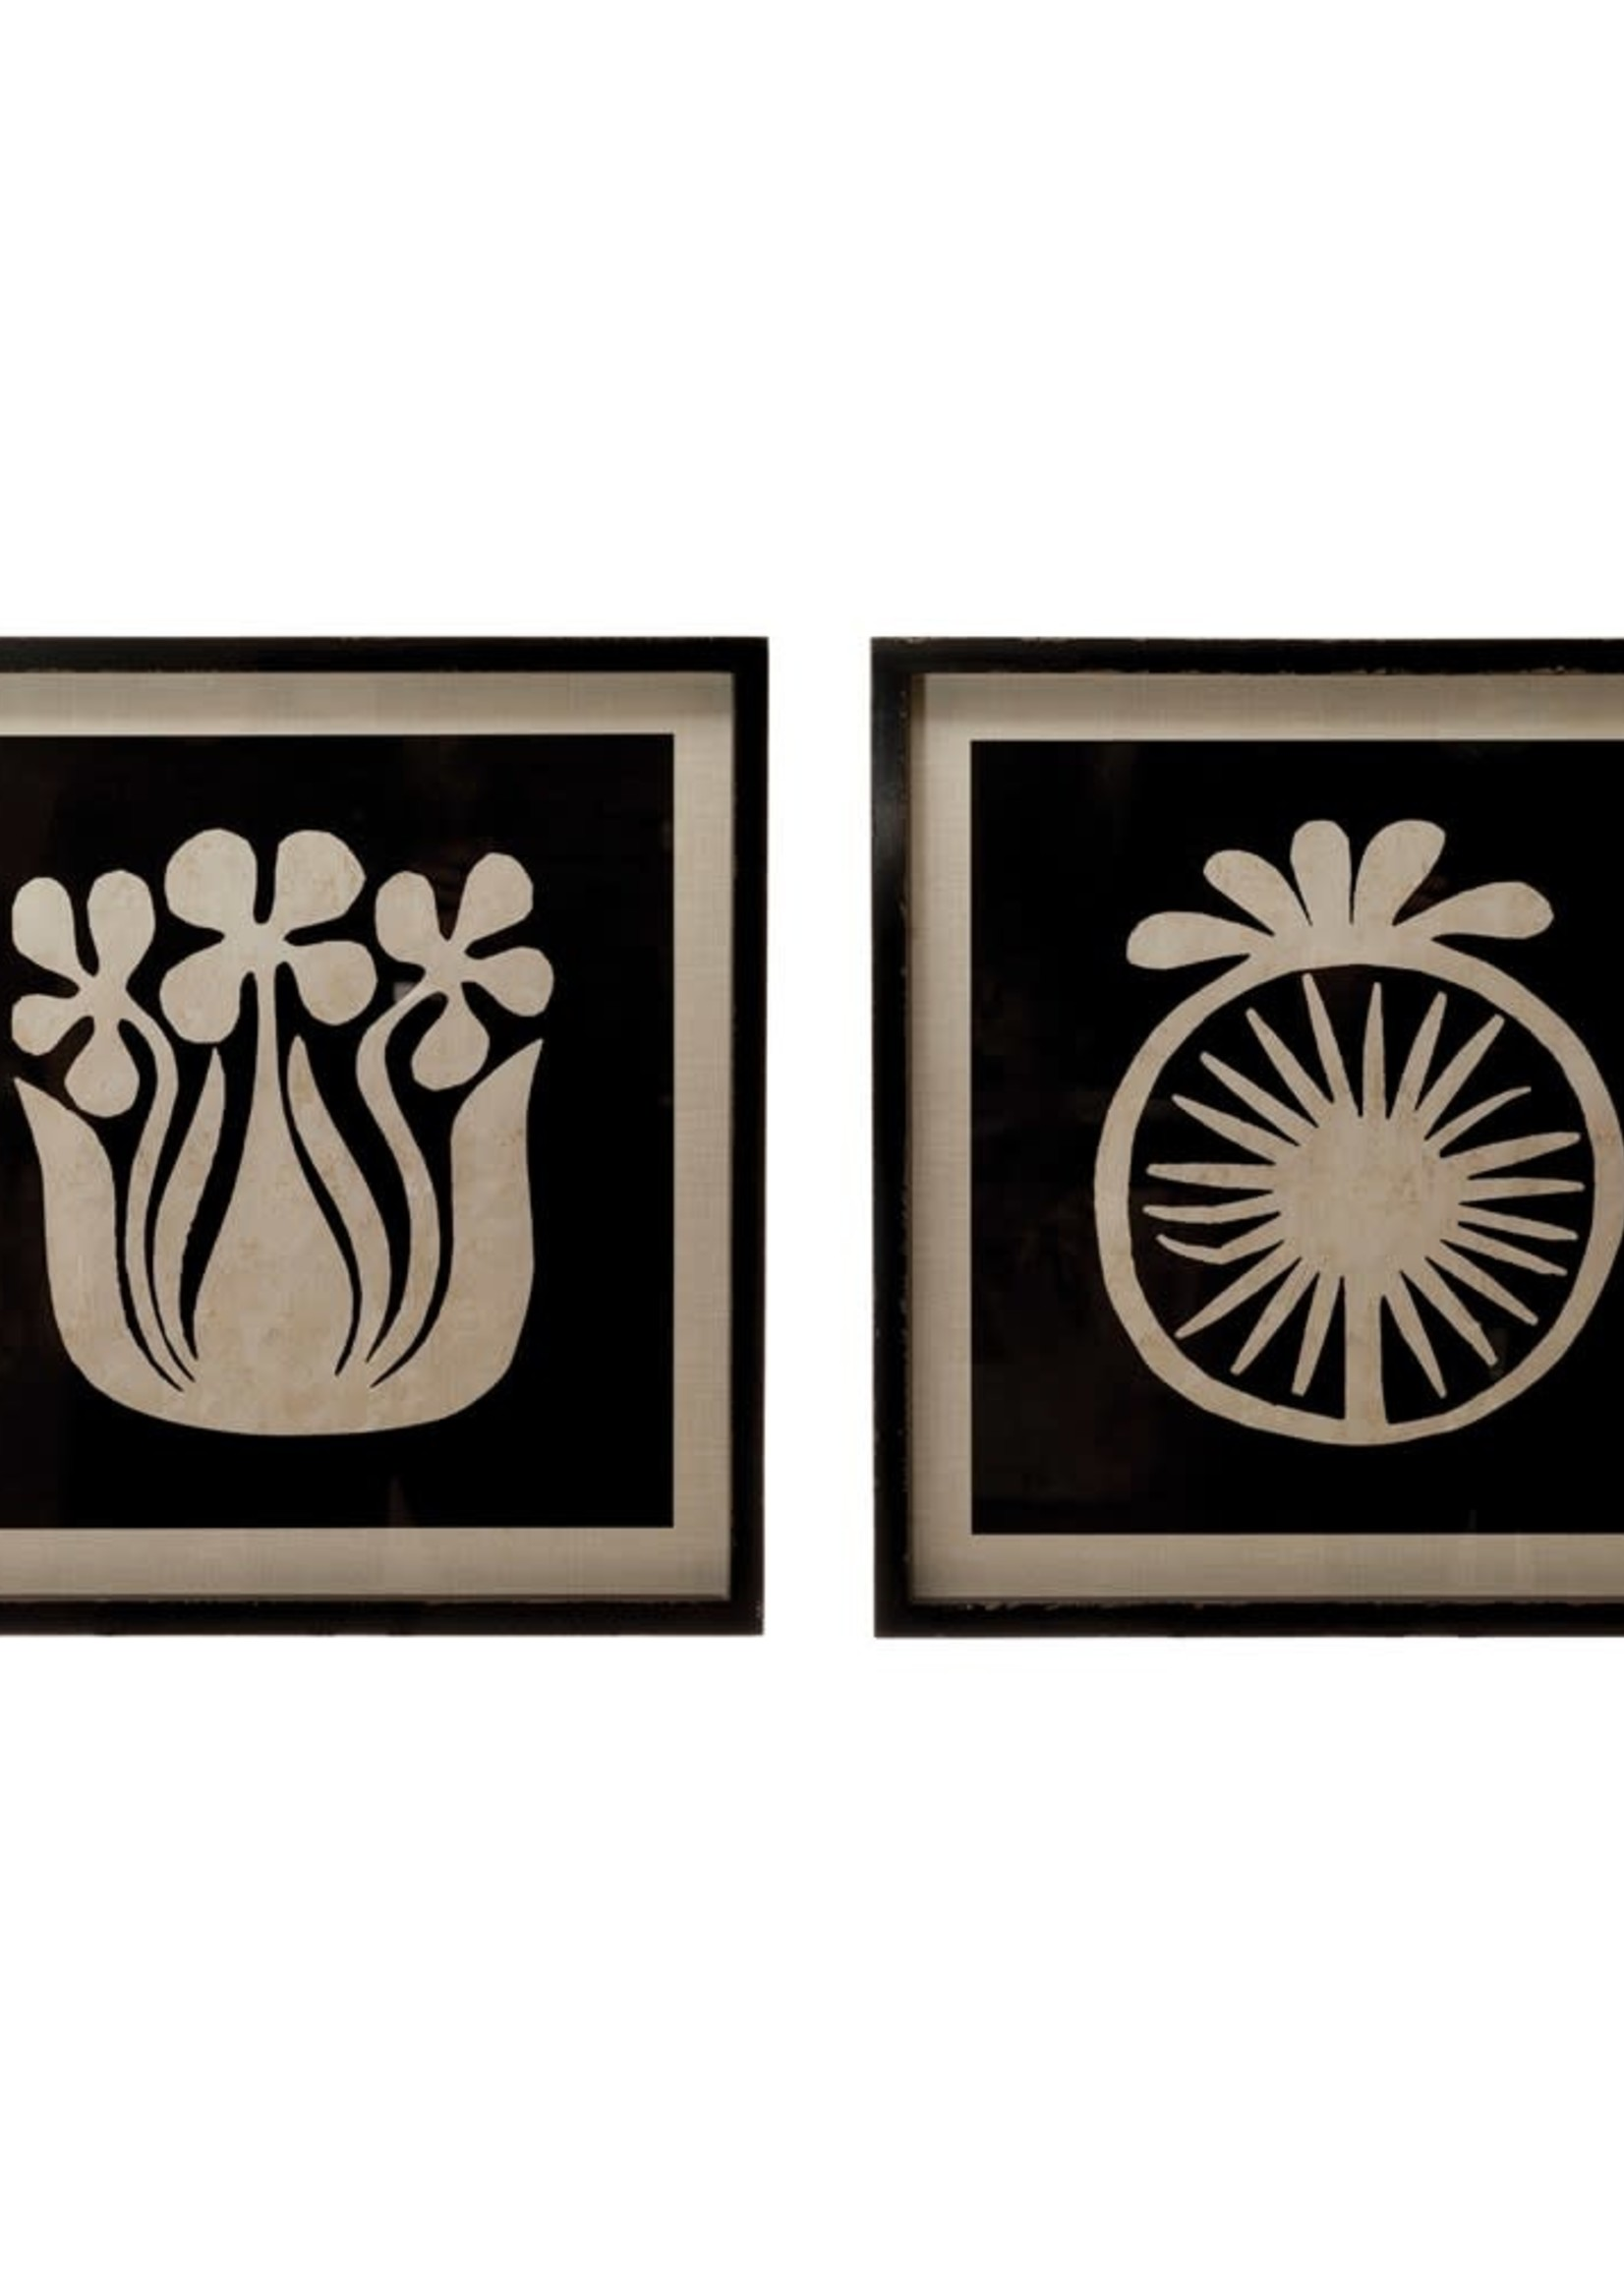 """19-3/4""""W x 19-3/4""""H Wood Framed Wall Decor w/ Abstract Flower, Black & White, 2 Styles"""